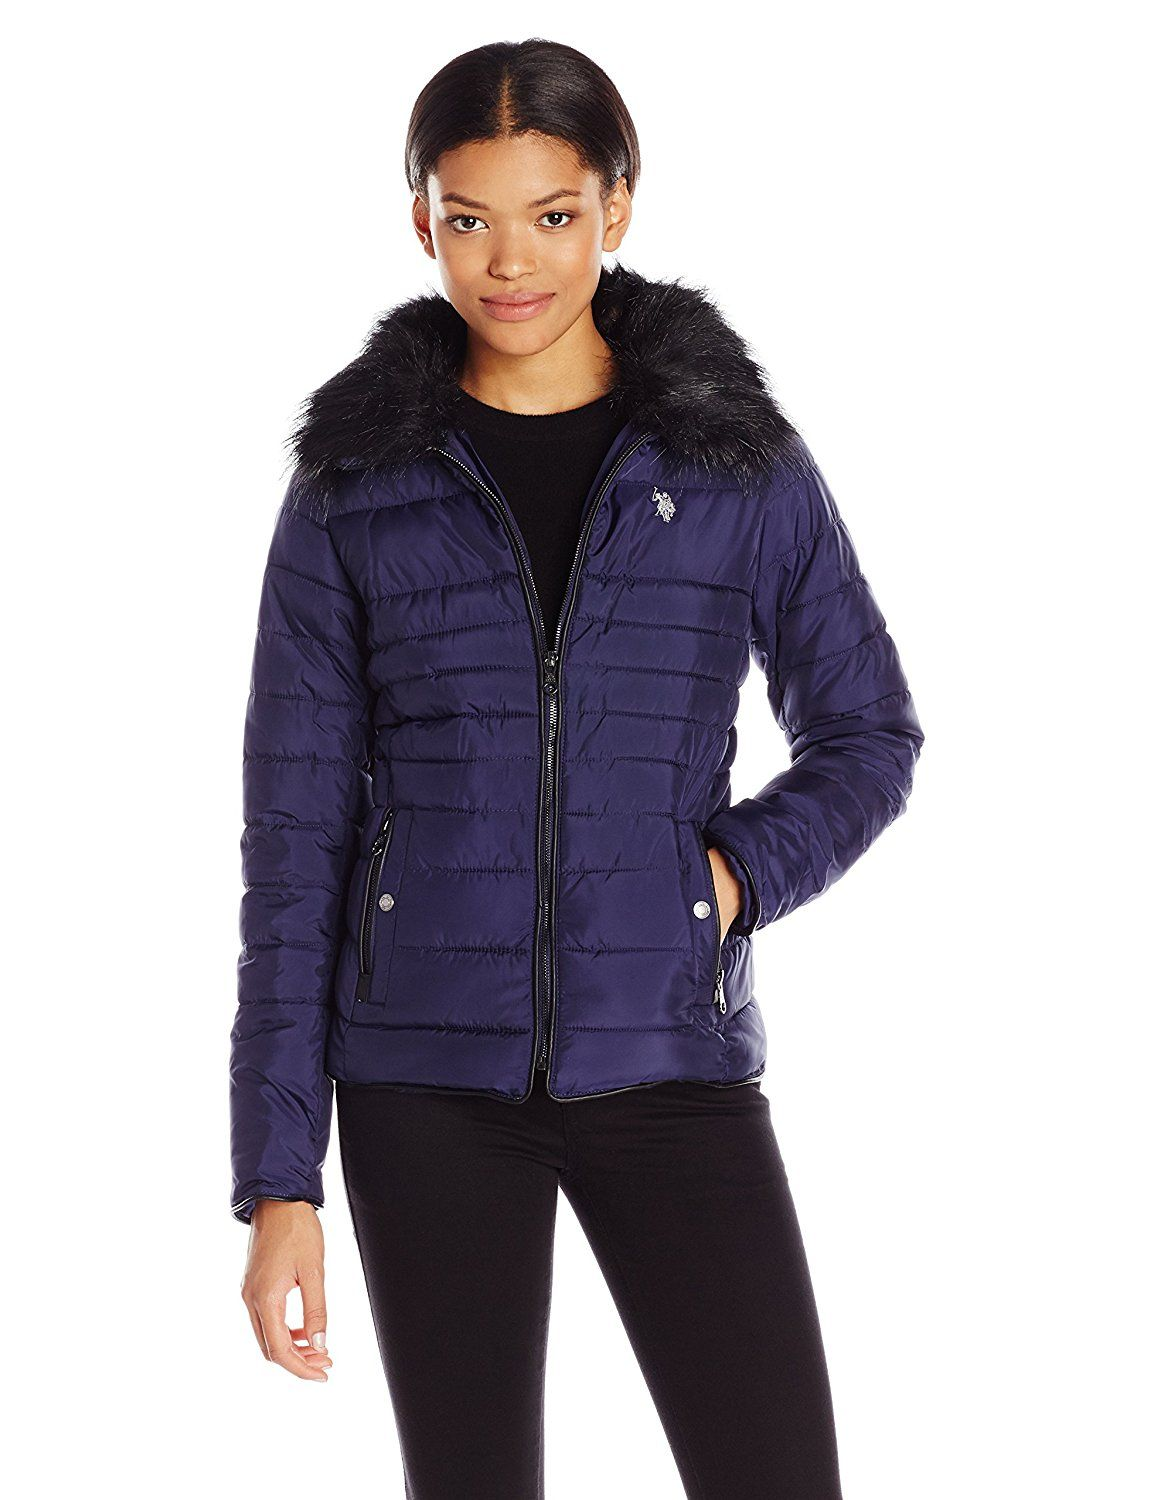 U.S. Polo Assn bunda Puffer Fashion Jacket with Faux Fur Collar U.S. Polo Assn.